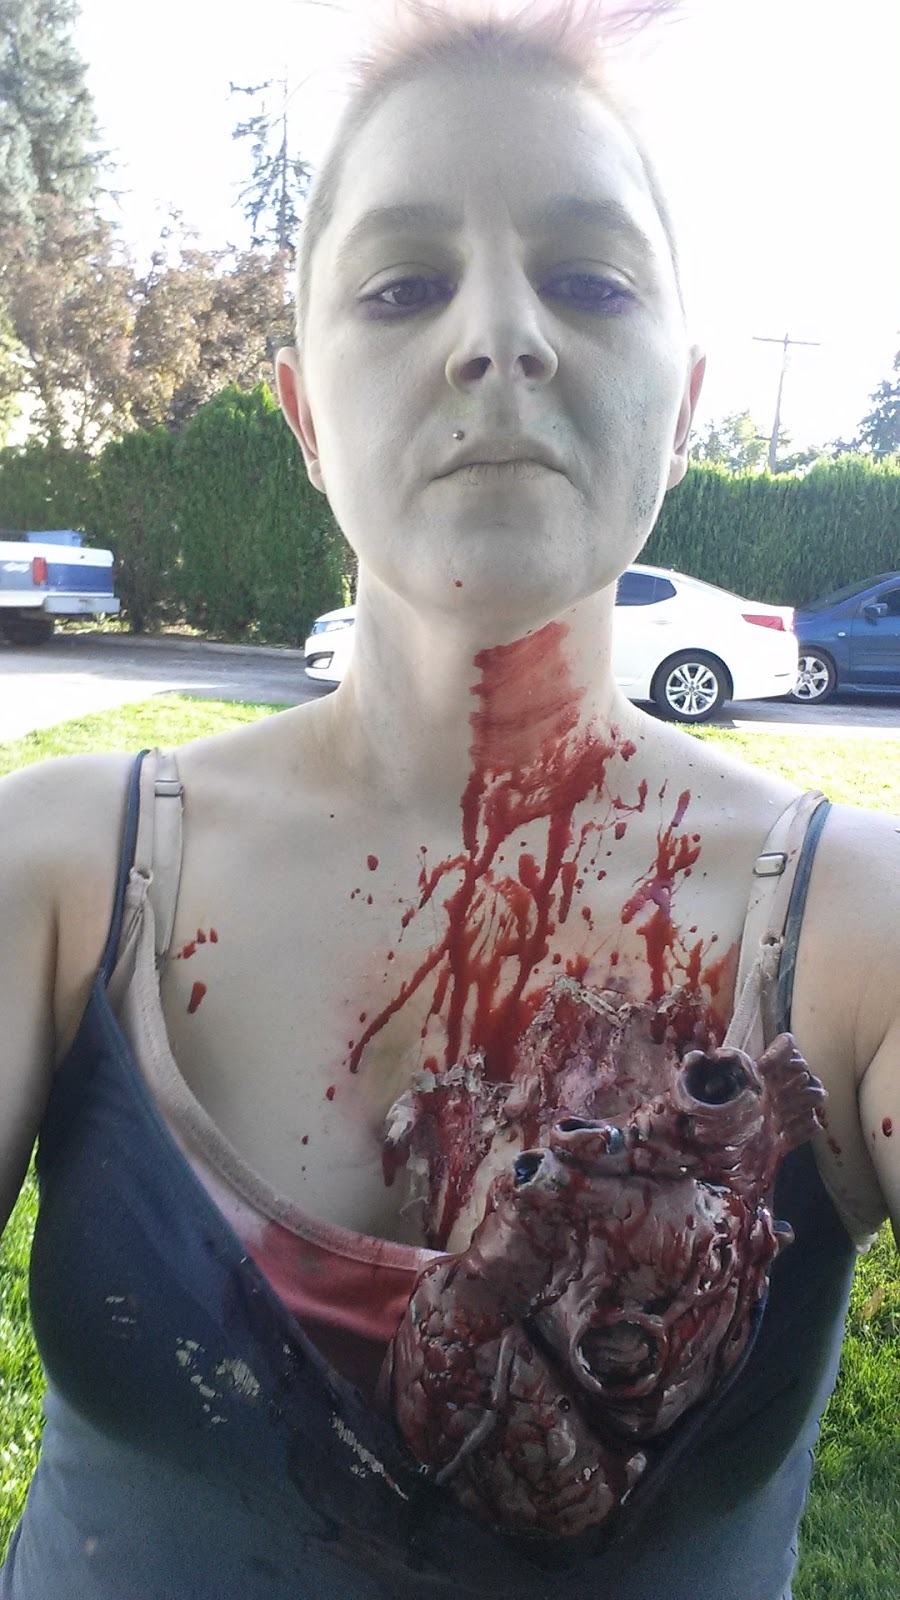 Looking for a last minute costume? Here's how to make yourself into a zombie, with step by step photo instructions!